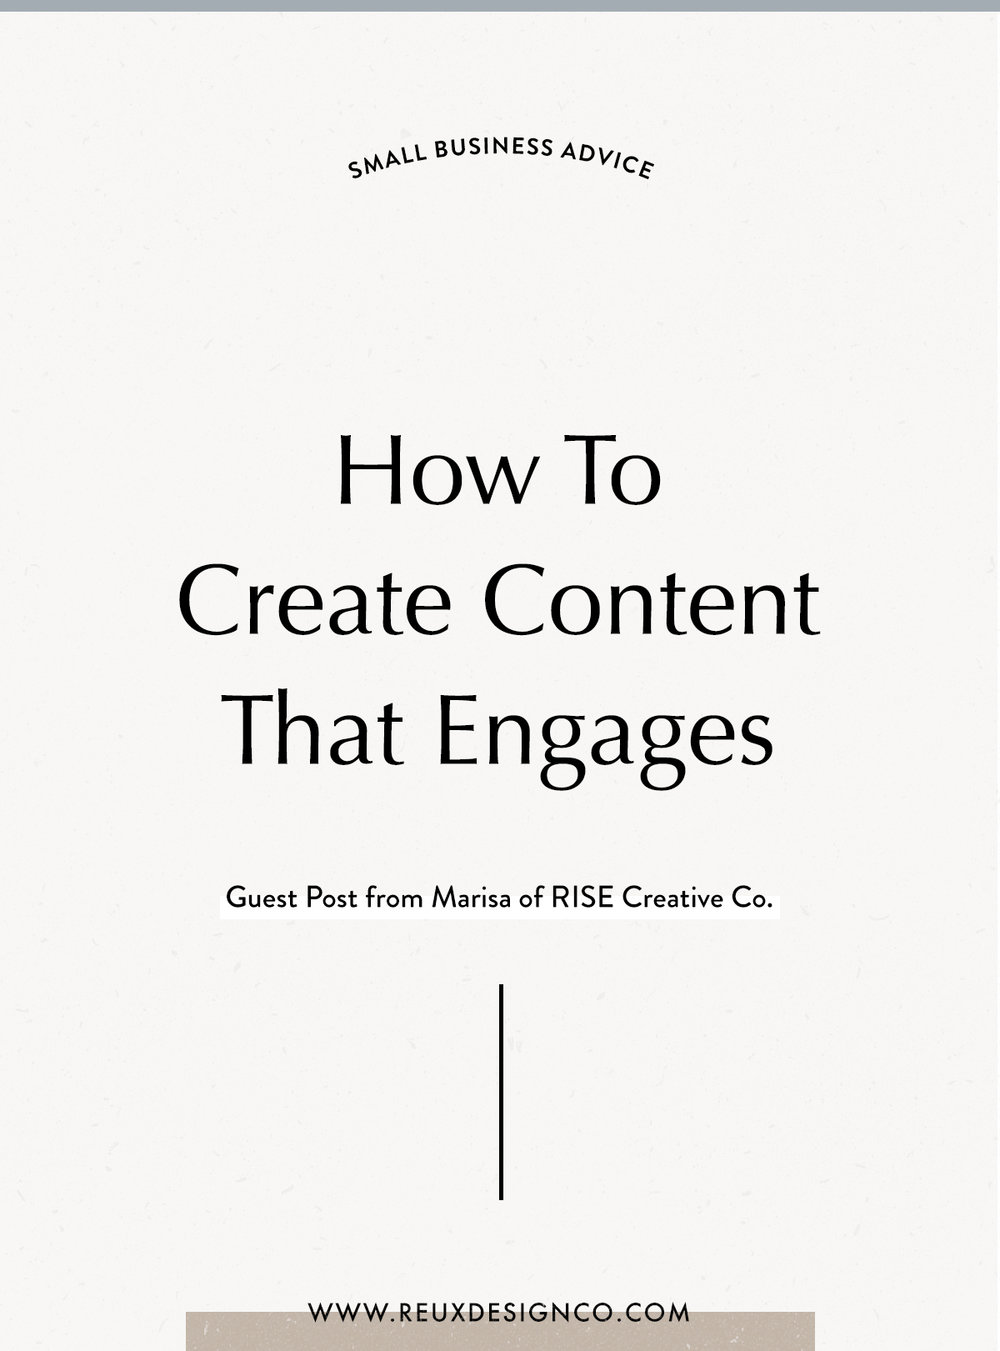 How to Create Content That Engages your Audience - guest post by ethical marketing entrepreneur Marisa Flacks of RISE Creative Co. | build a sustainable, conscious business | Reux Design Co.